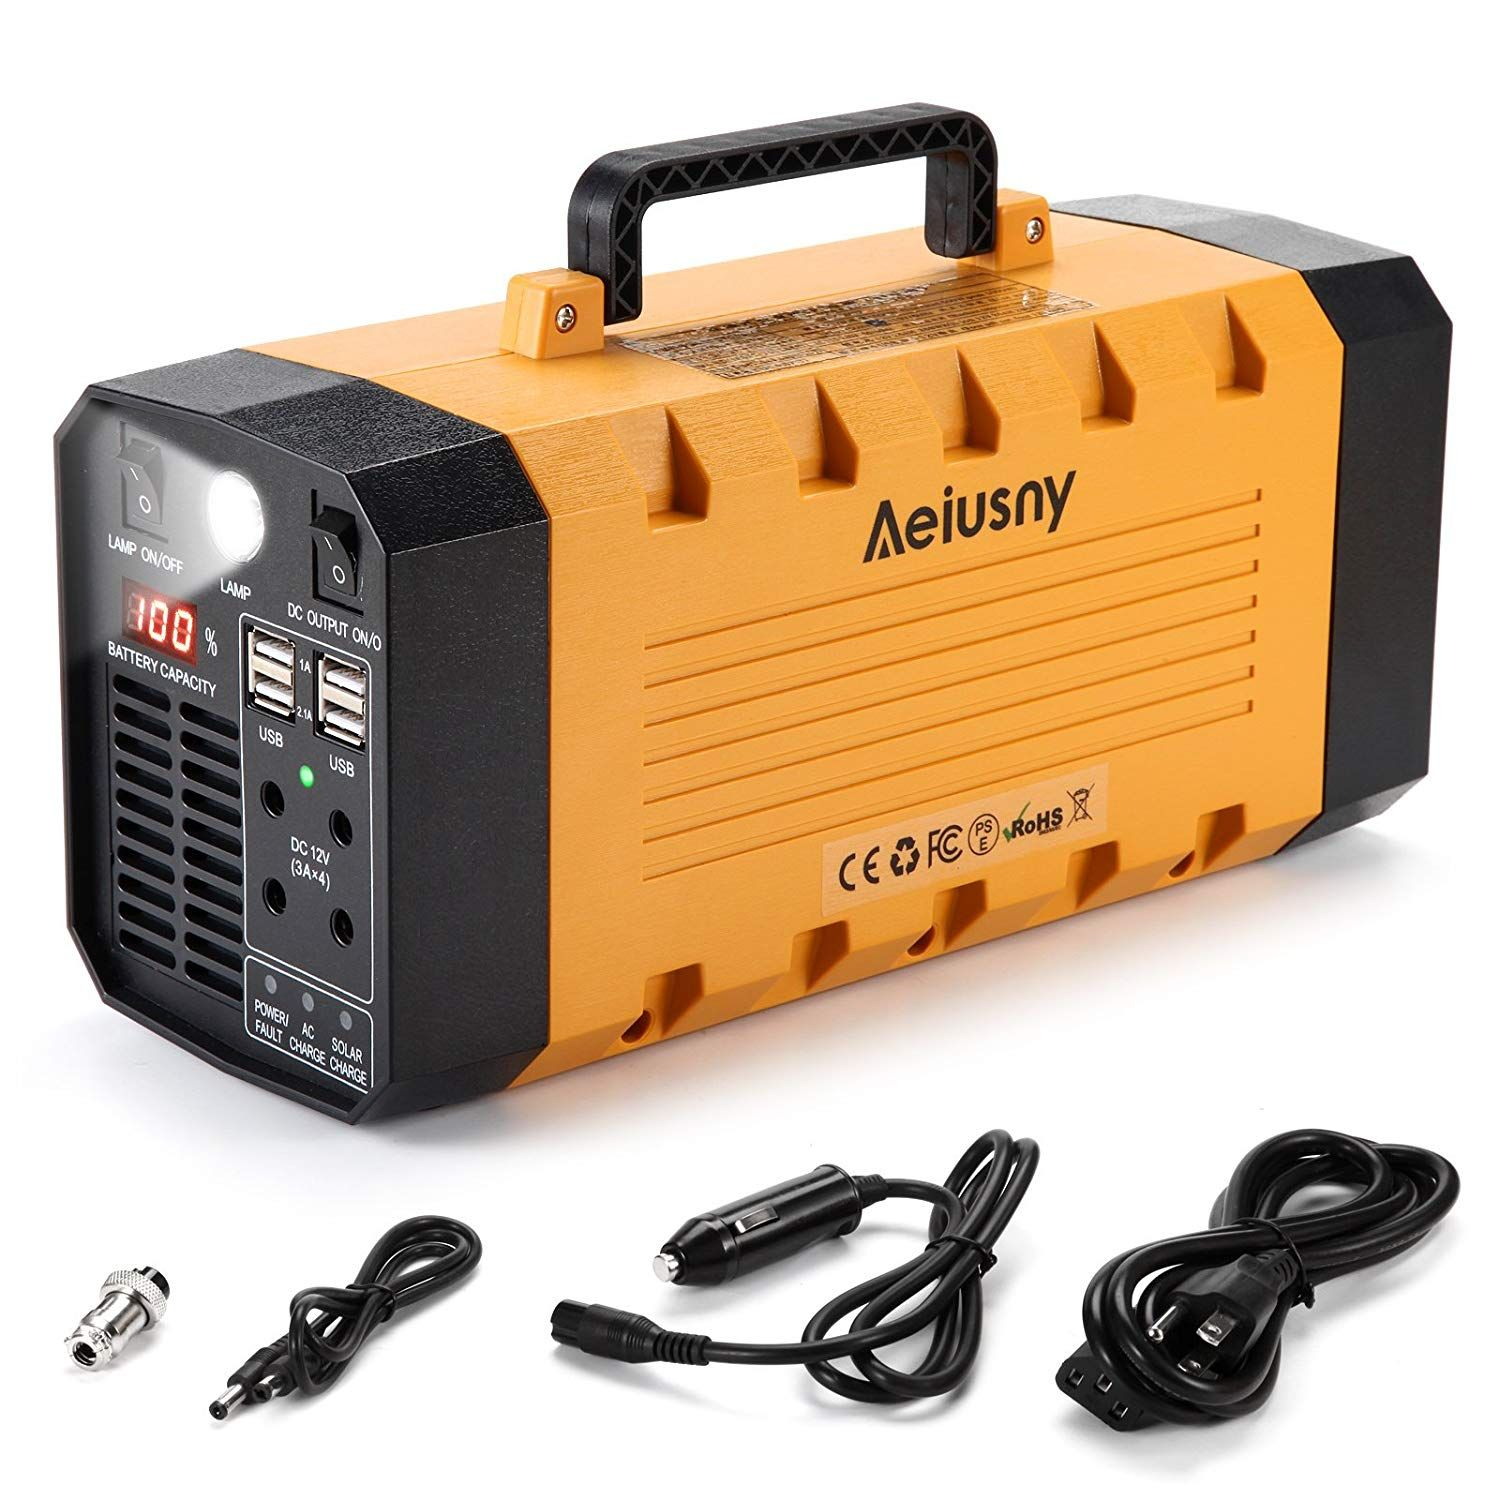 Aeiusny 500w 288wh Portable Generator Emergency Power Station Cpap Backup Lithium Battery Portable Solar Generator Solar Powered Generator Portable Generator